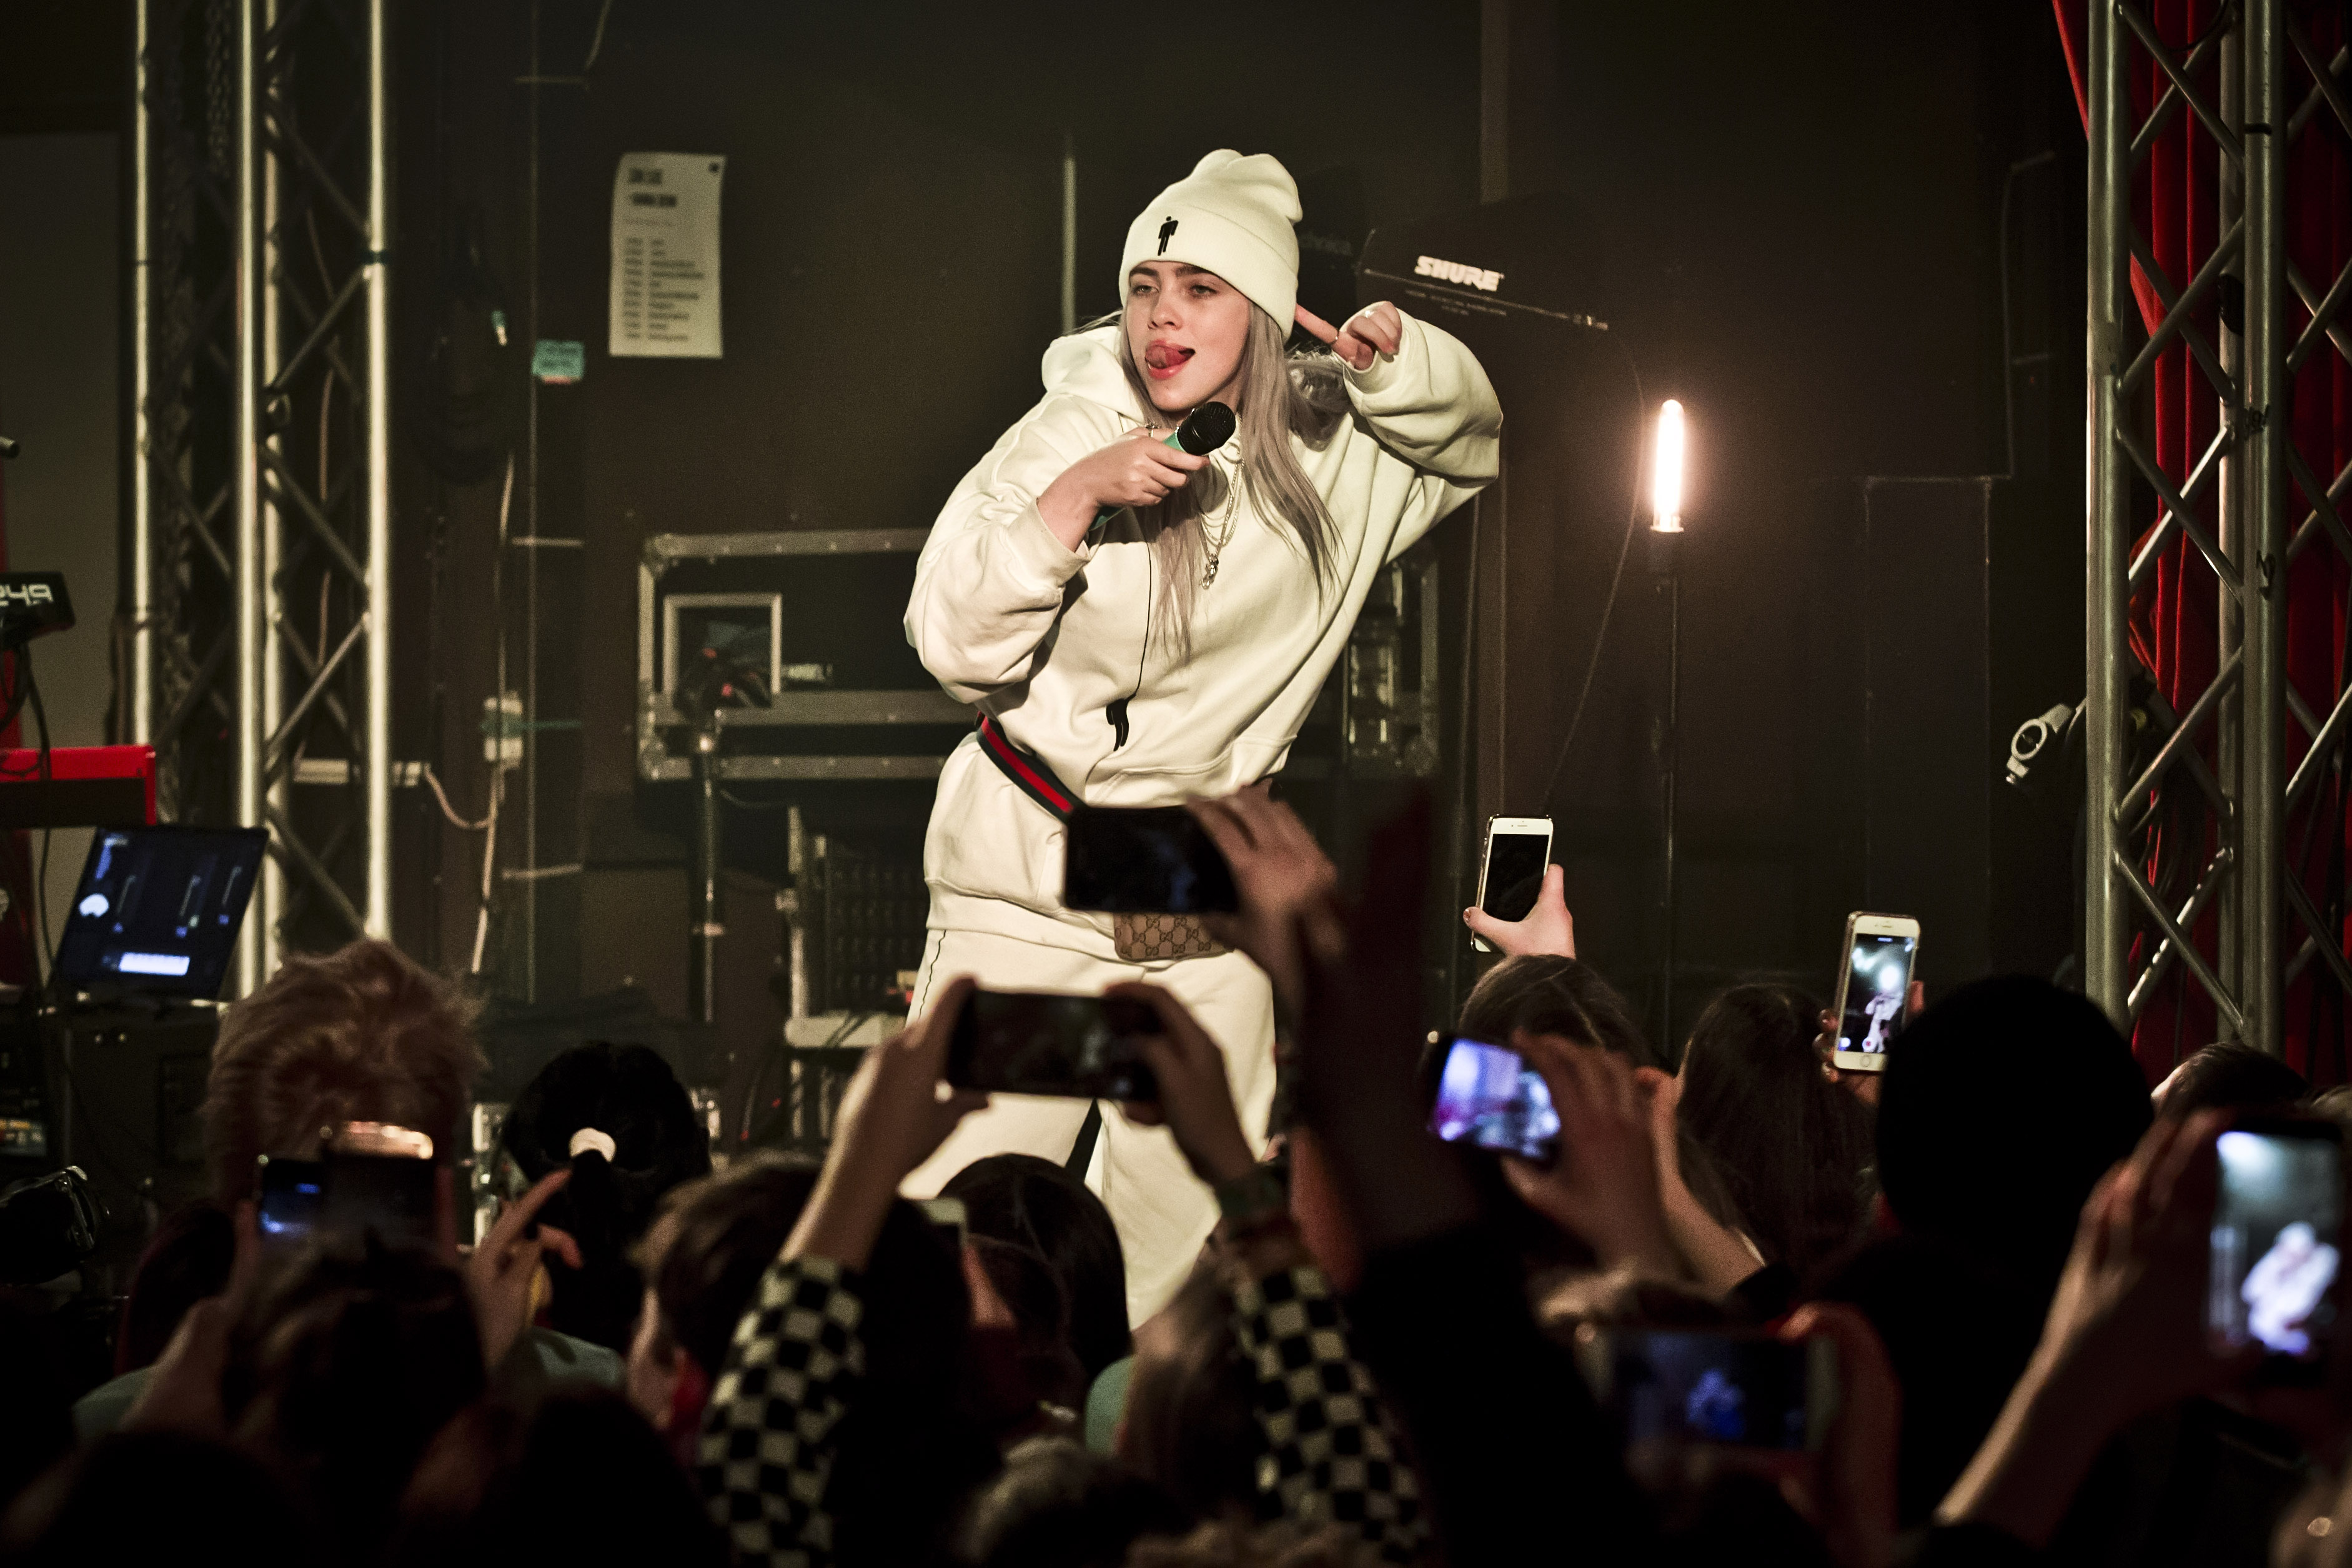 BERLIN, GERMANY - FEBRUARY 26: American singer Billie Eilish performs live on stage during a concert at the Lido on February 26, 2018 in Berlin, Germany. (Photo by Frank Hoensch/Redferns)